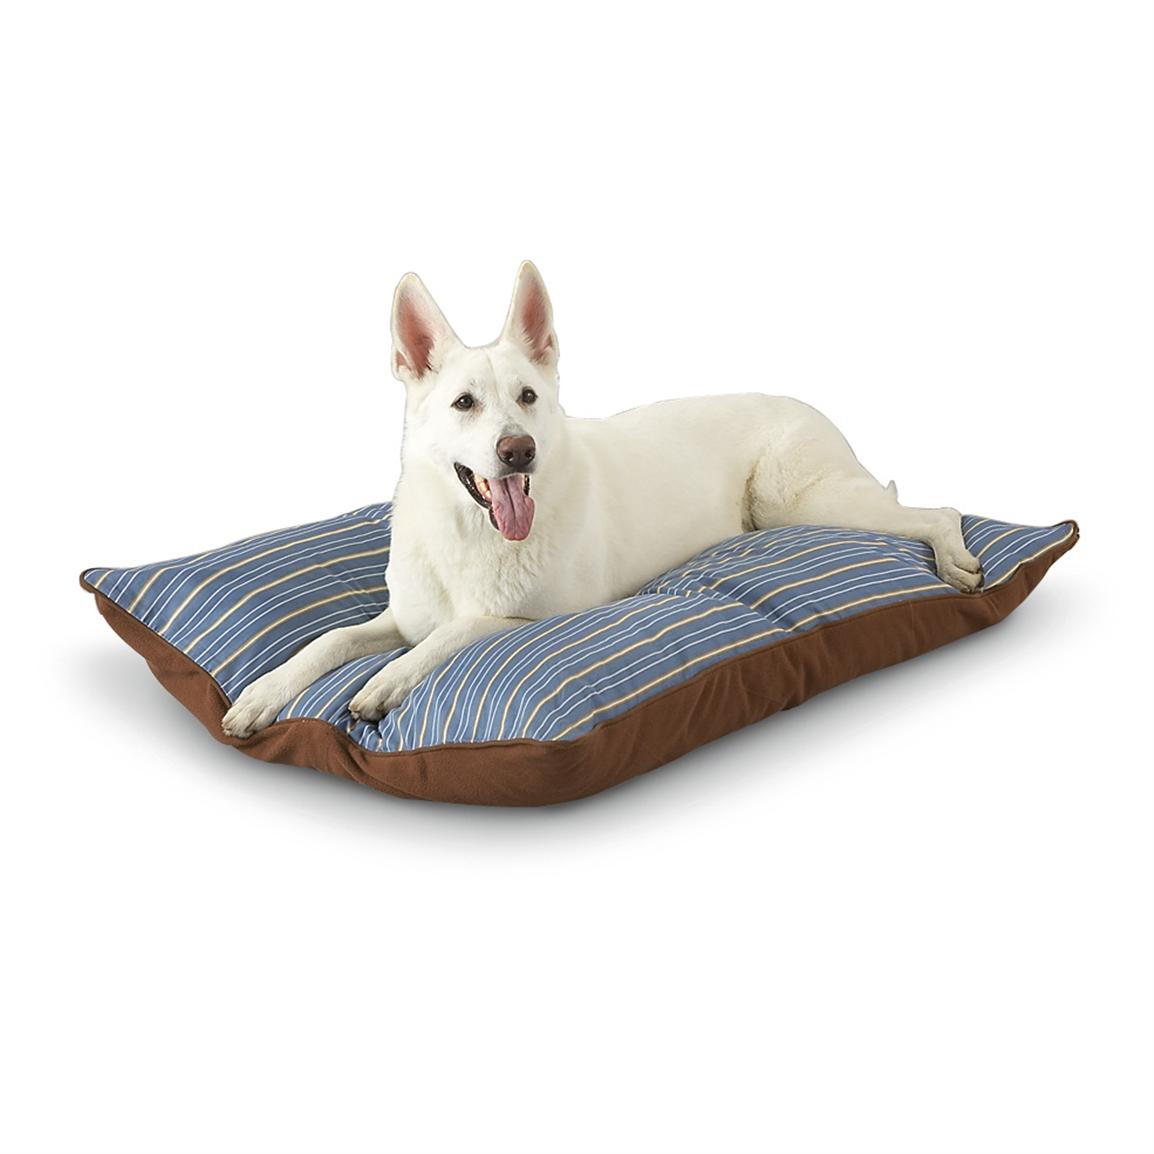 Deluxe 35x44 Quot Dog Bed 165295 Kennels Amp Beds At